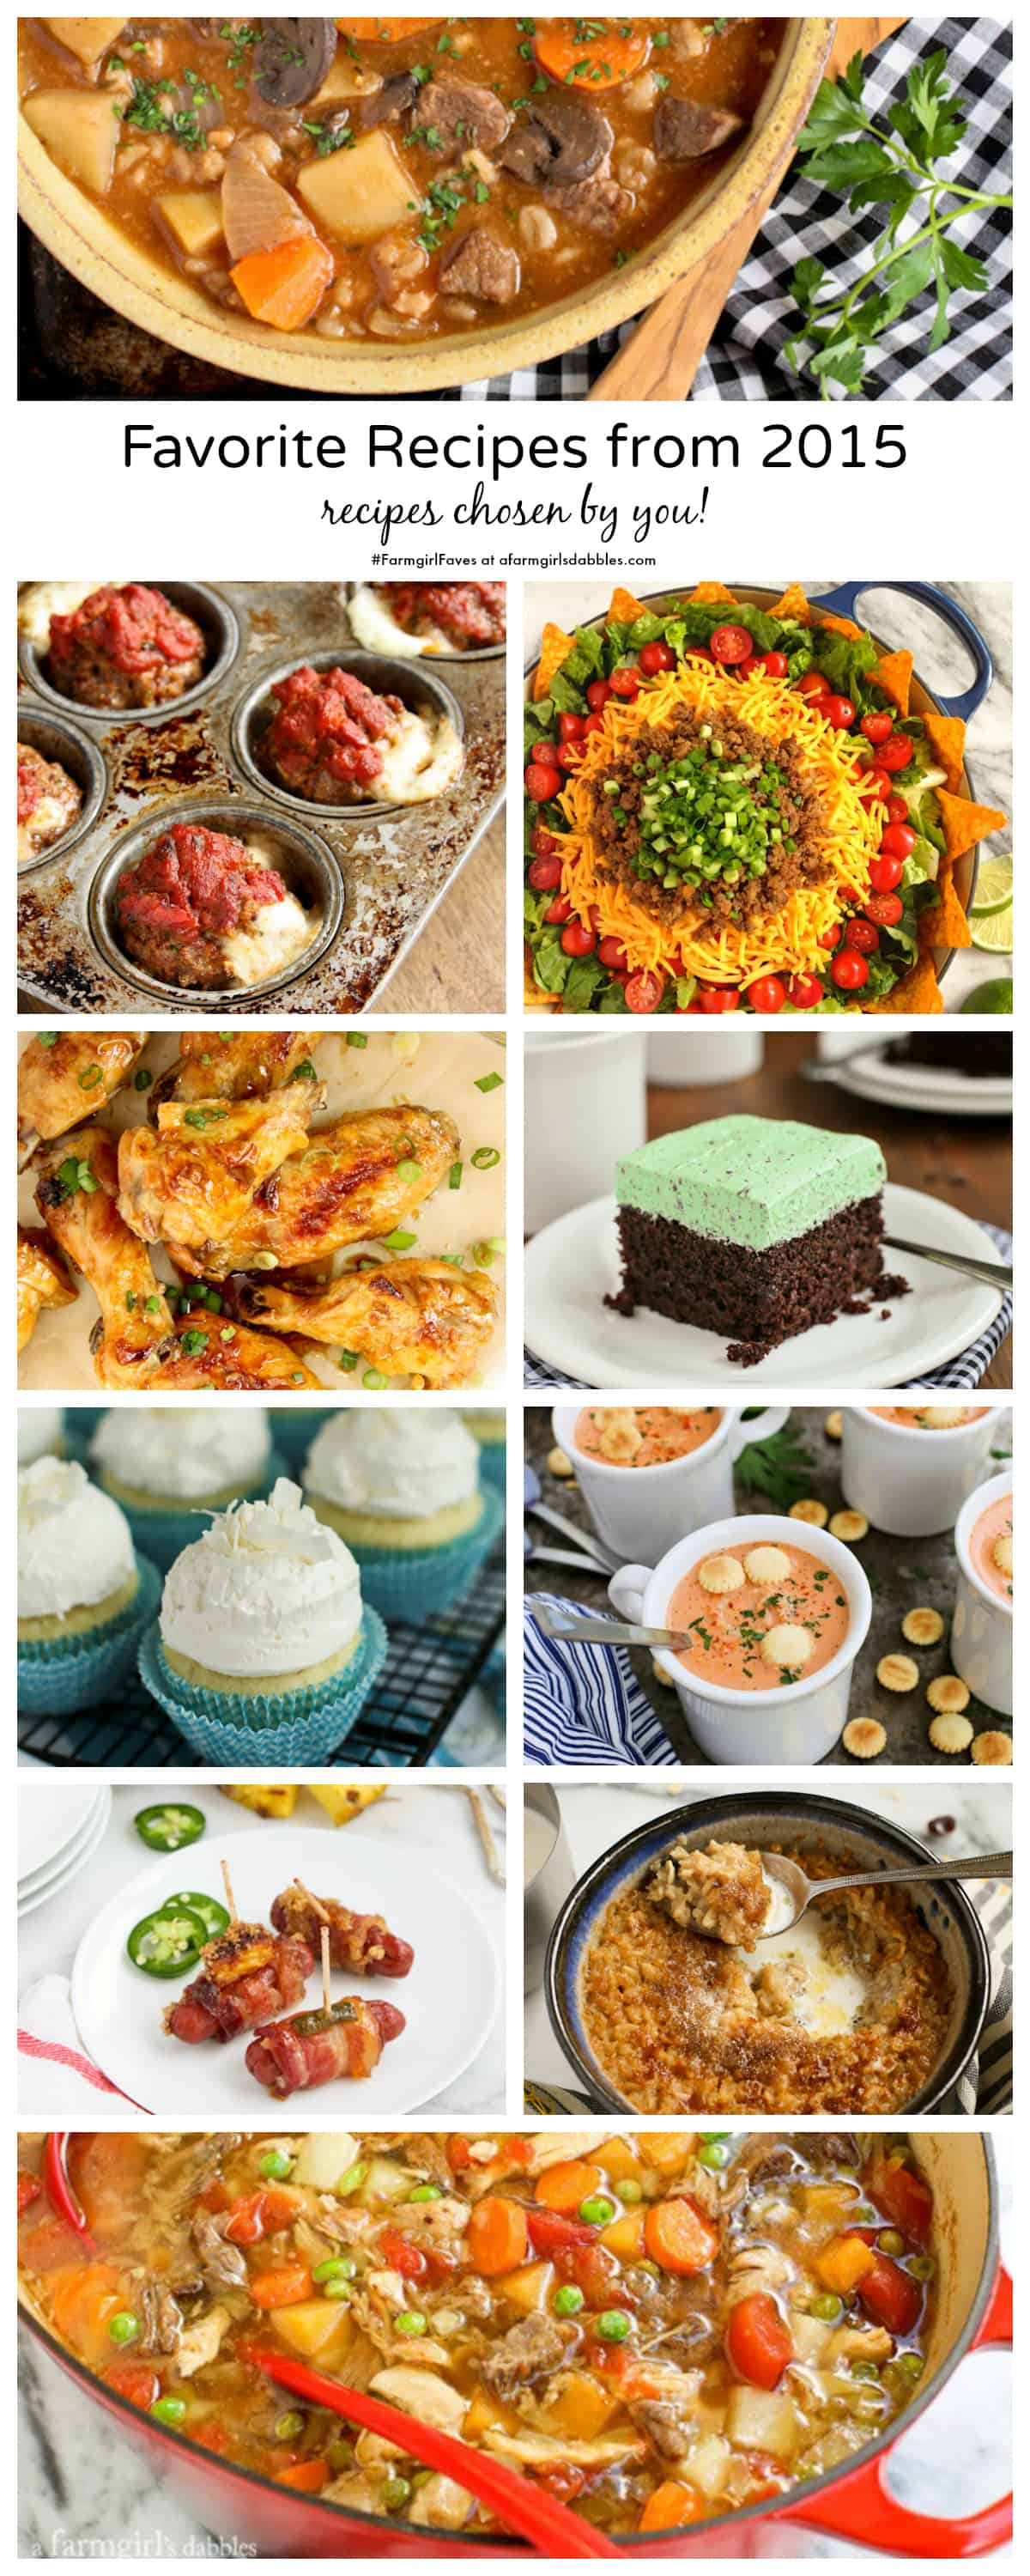 Favorite Recipes from 2015, reader favorites - from afarmgirlsdabbles.com